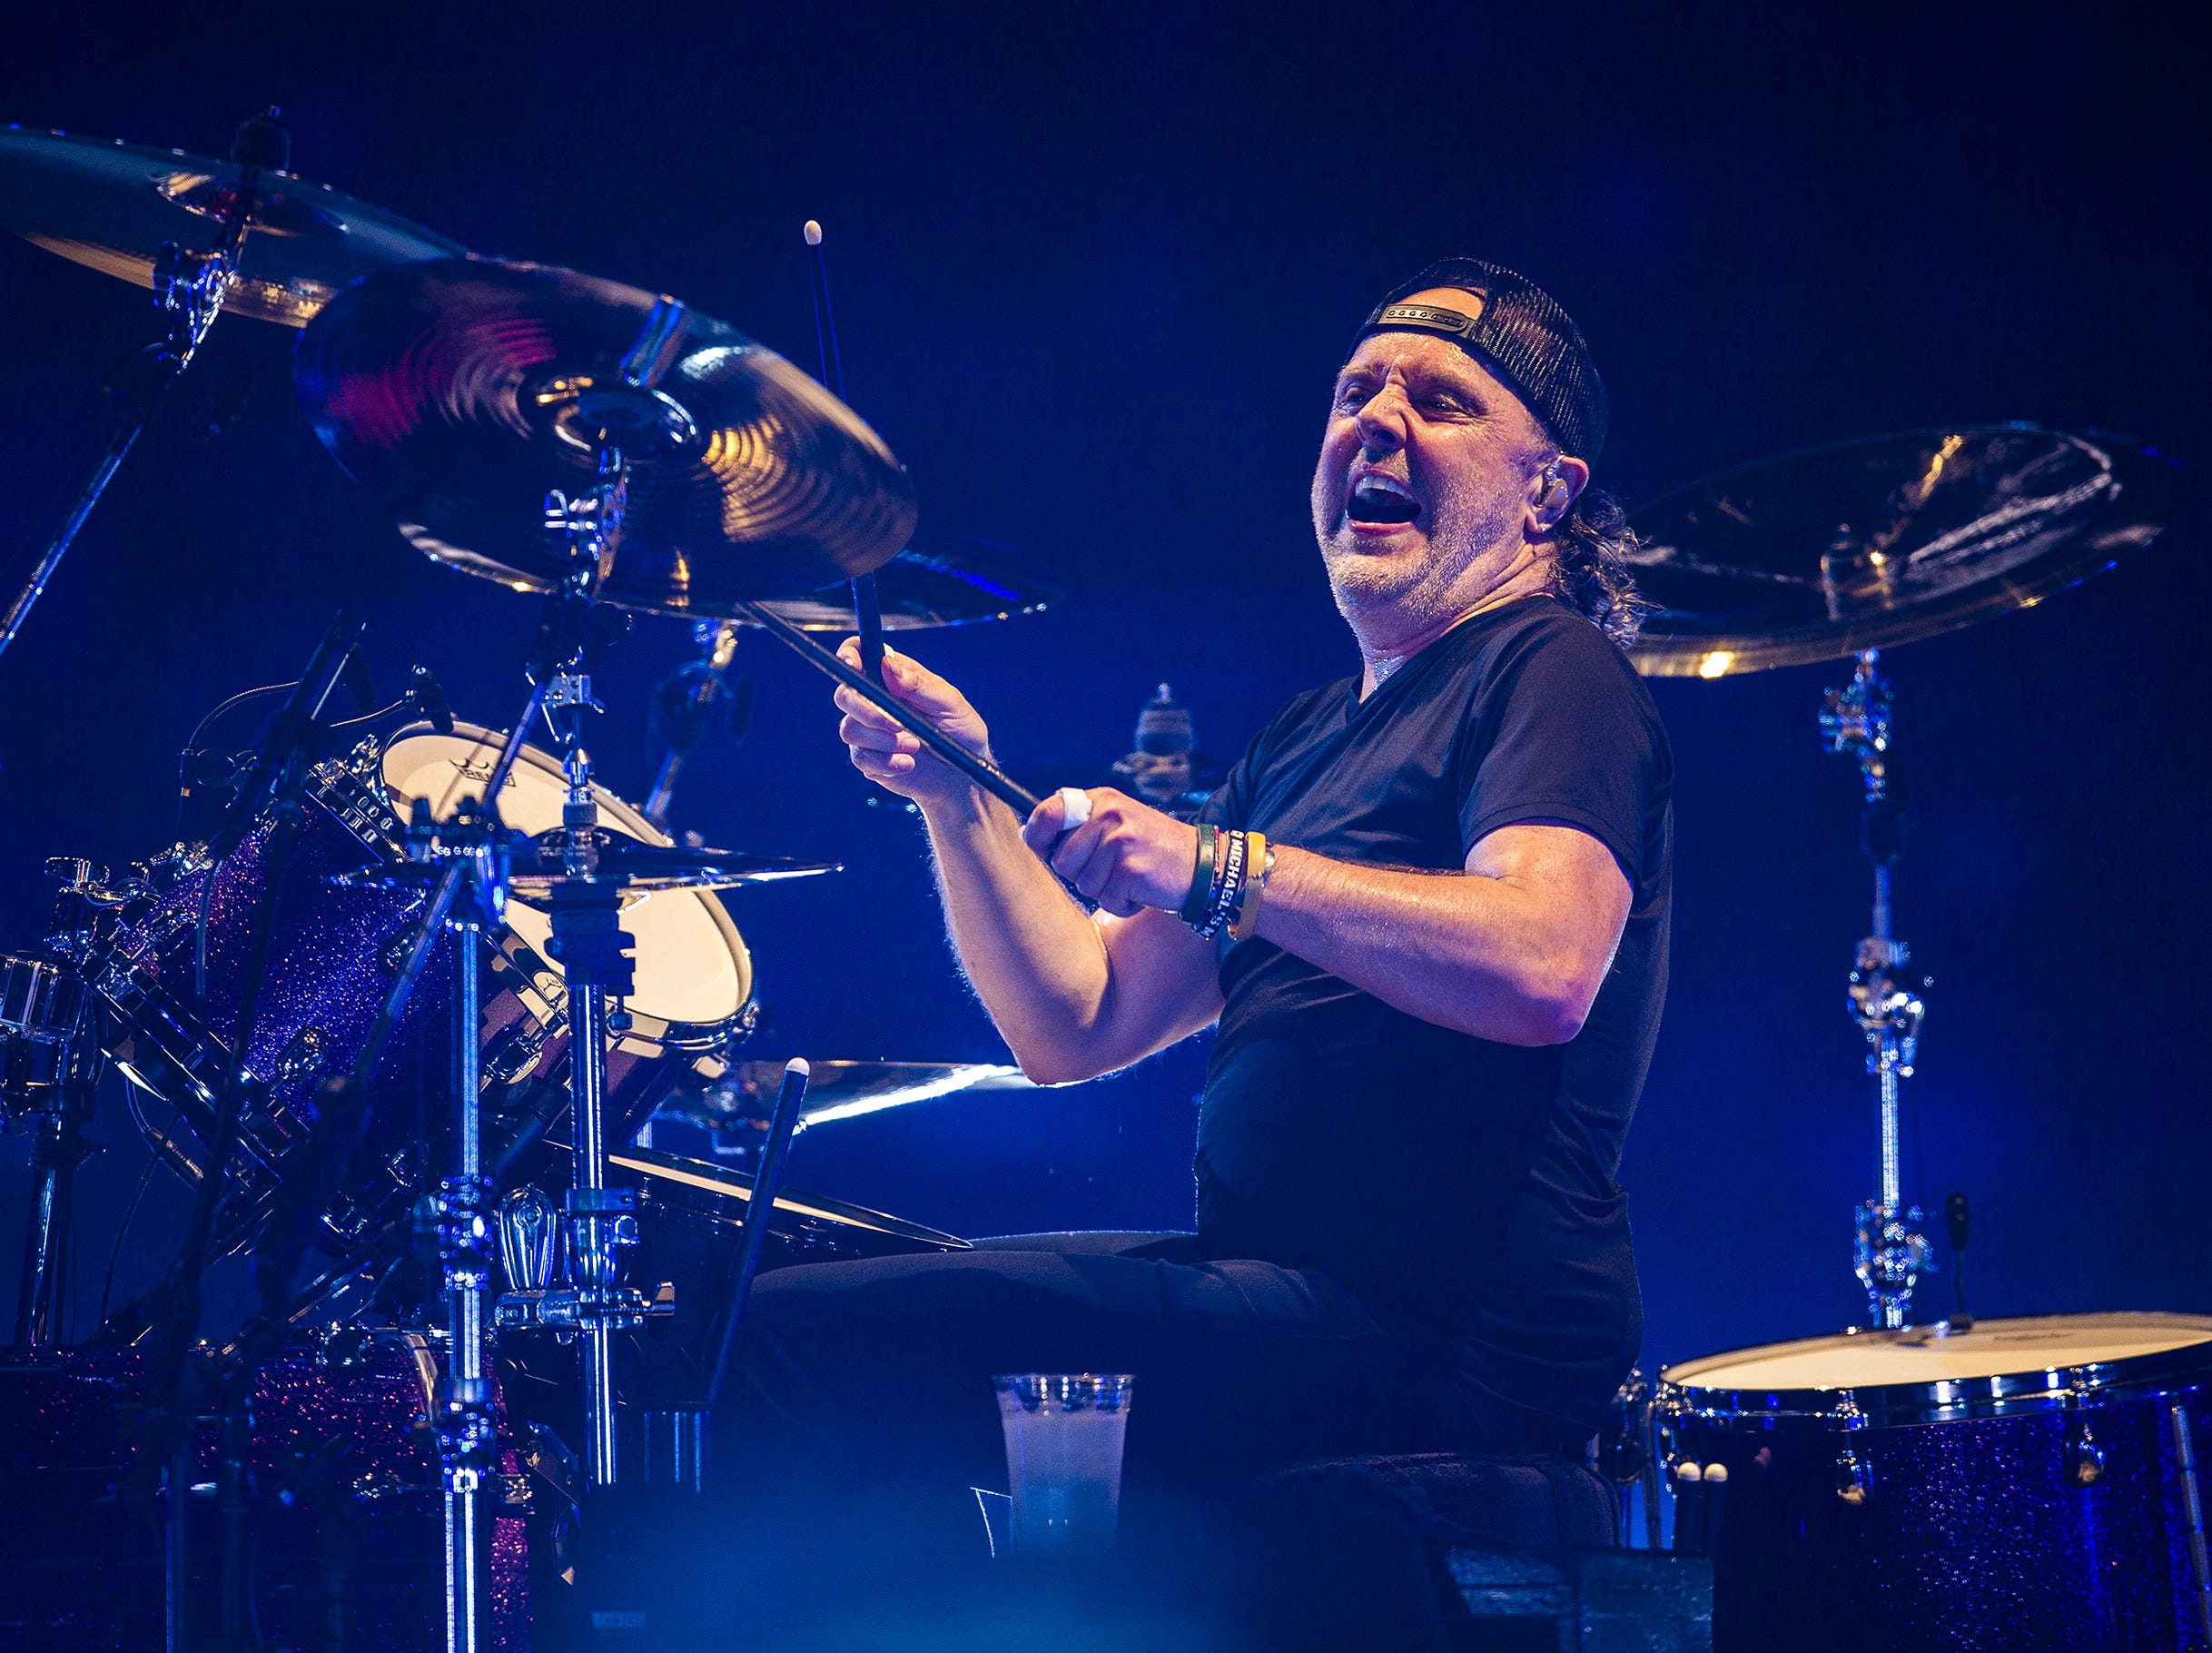 Lars Ulrich, Metallica's drummer, performs at the KFC Yum Center in downtown Louisville, Ky. on Saturday, March 9, 2019.